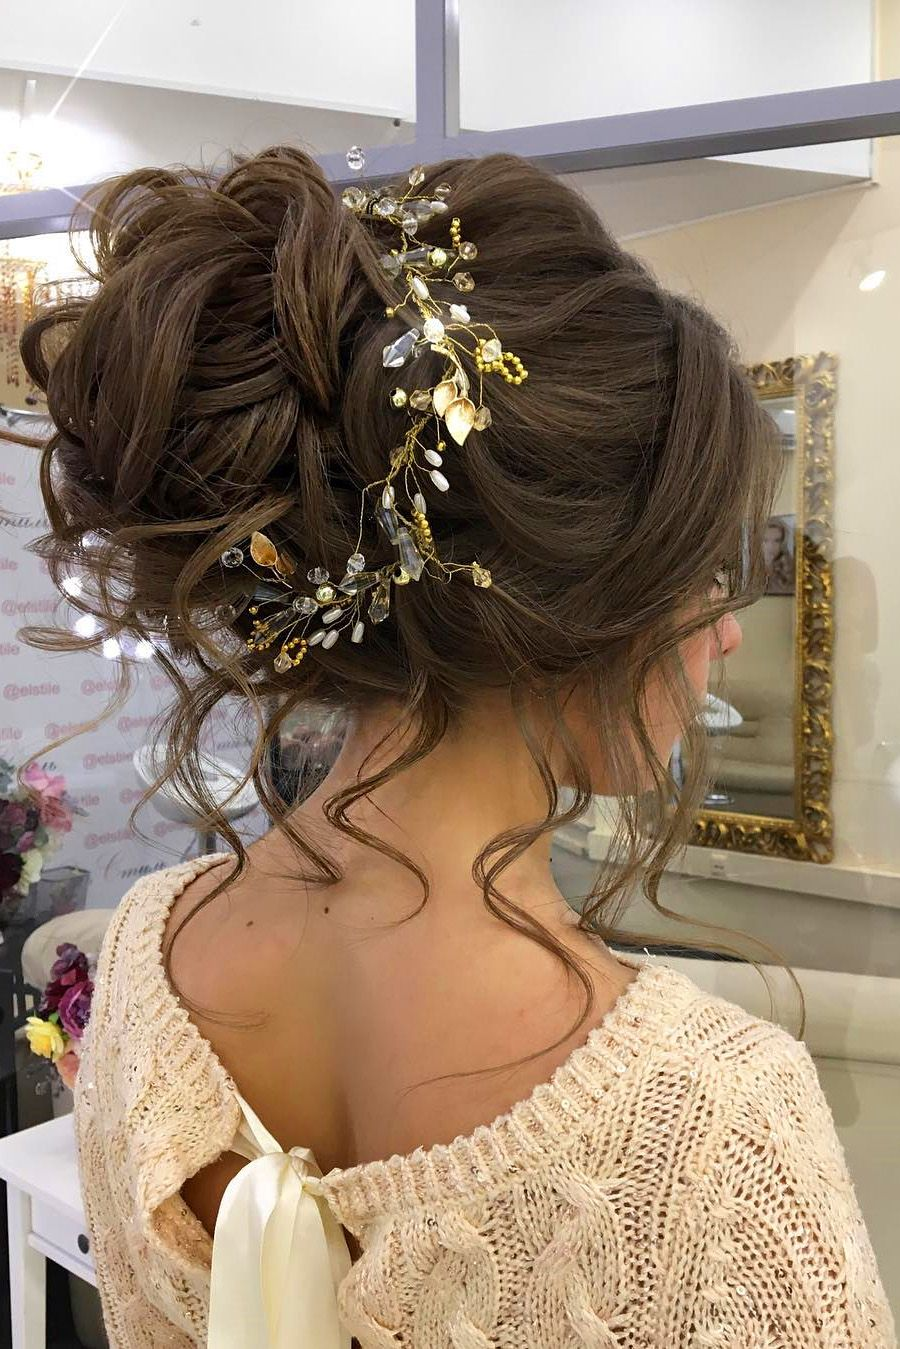 30 Lovely Wedding Bun Hairstyles Wedding Forward Hairdo Wedding Bun Hairstyles Quince Hairstyles